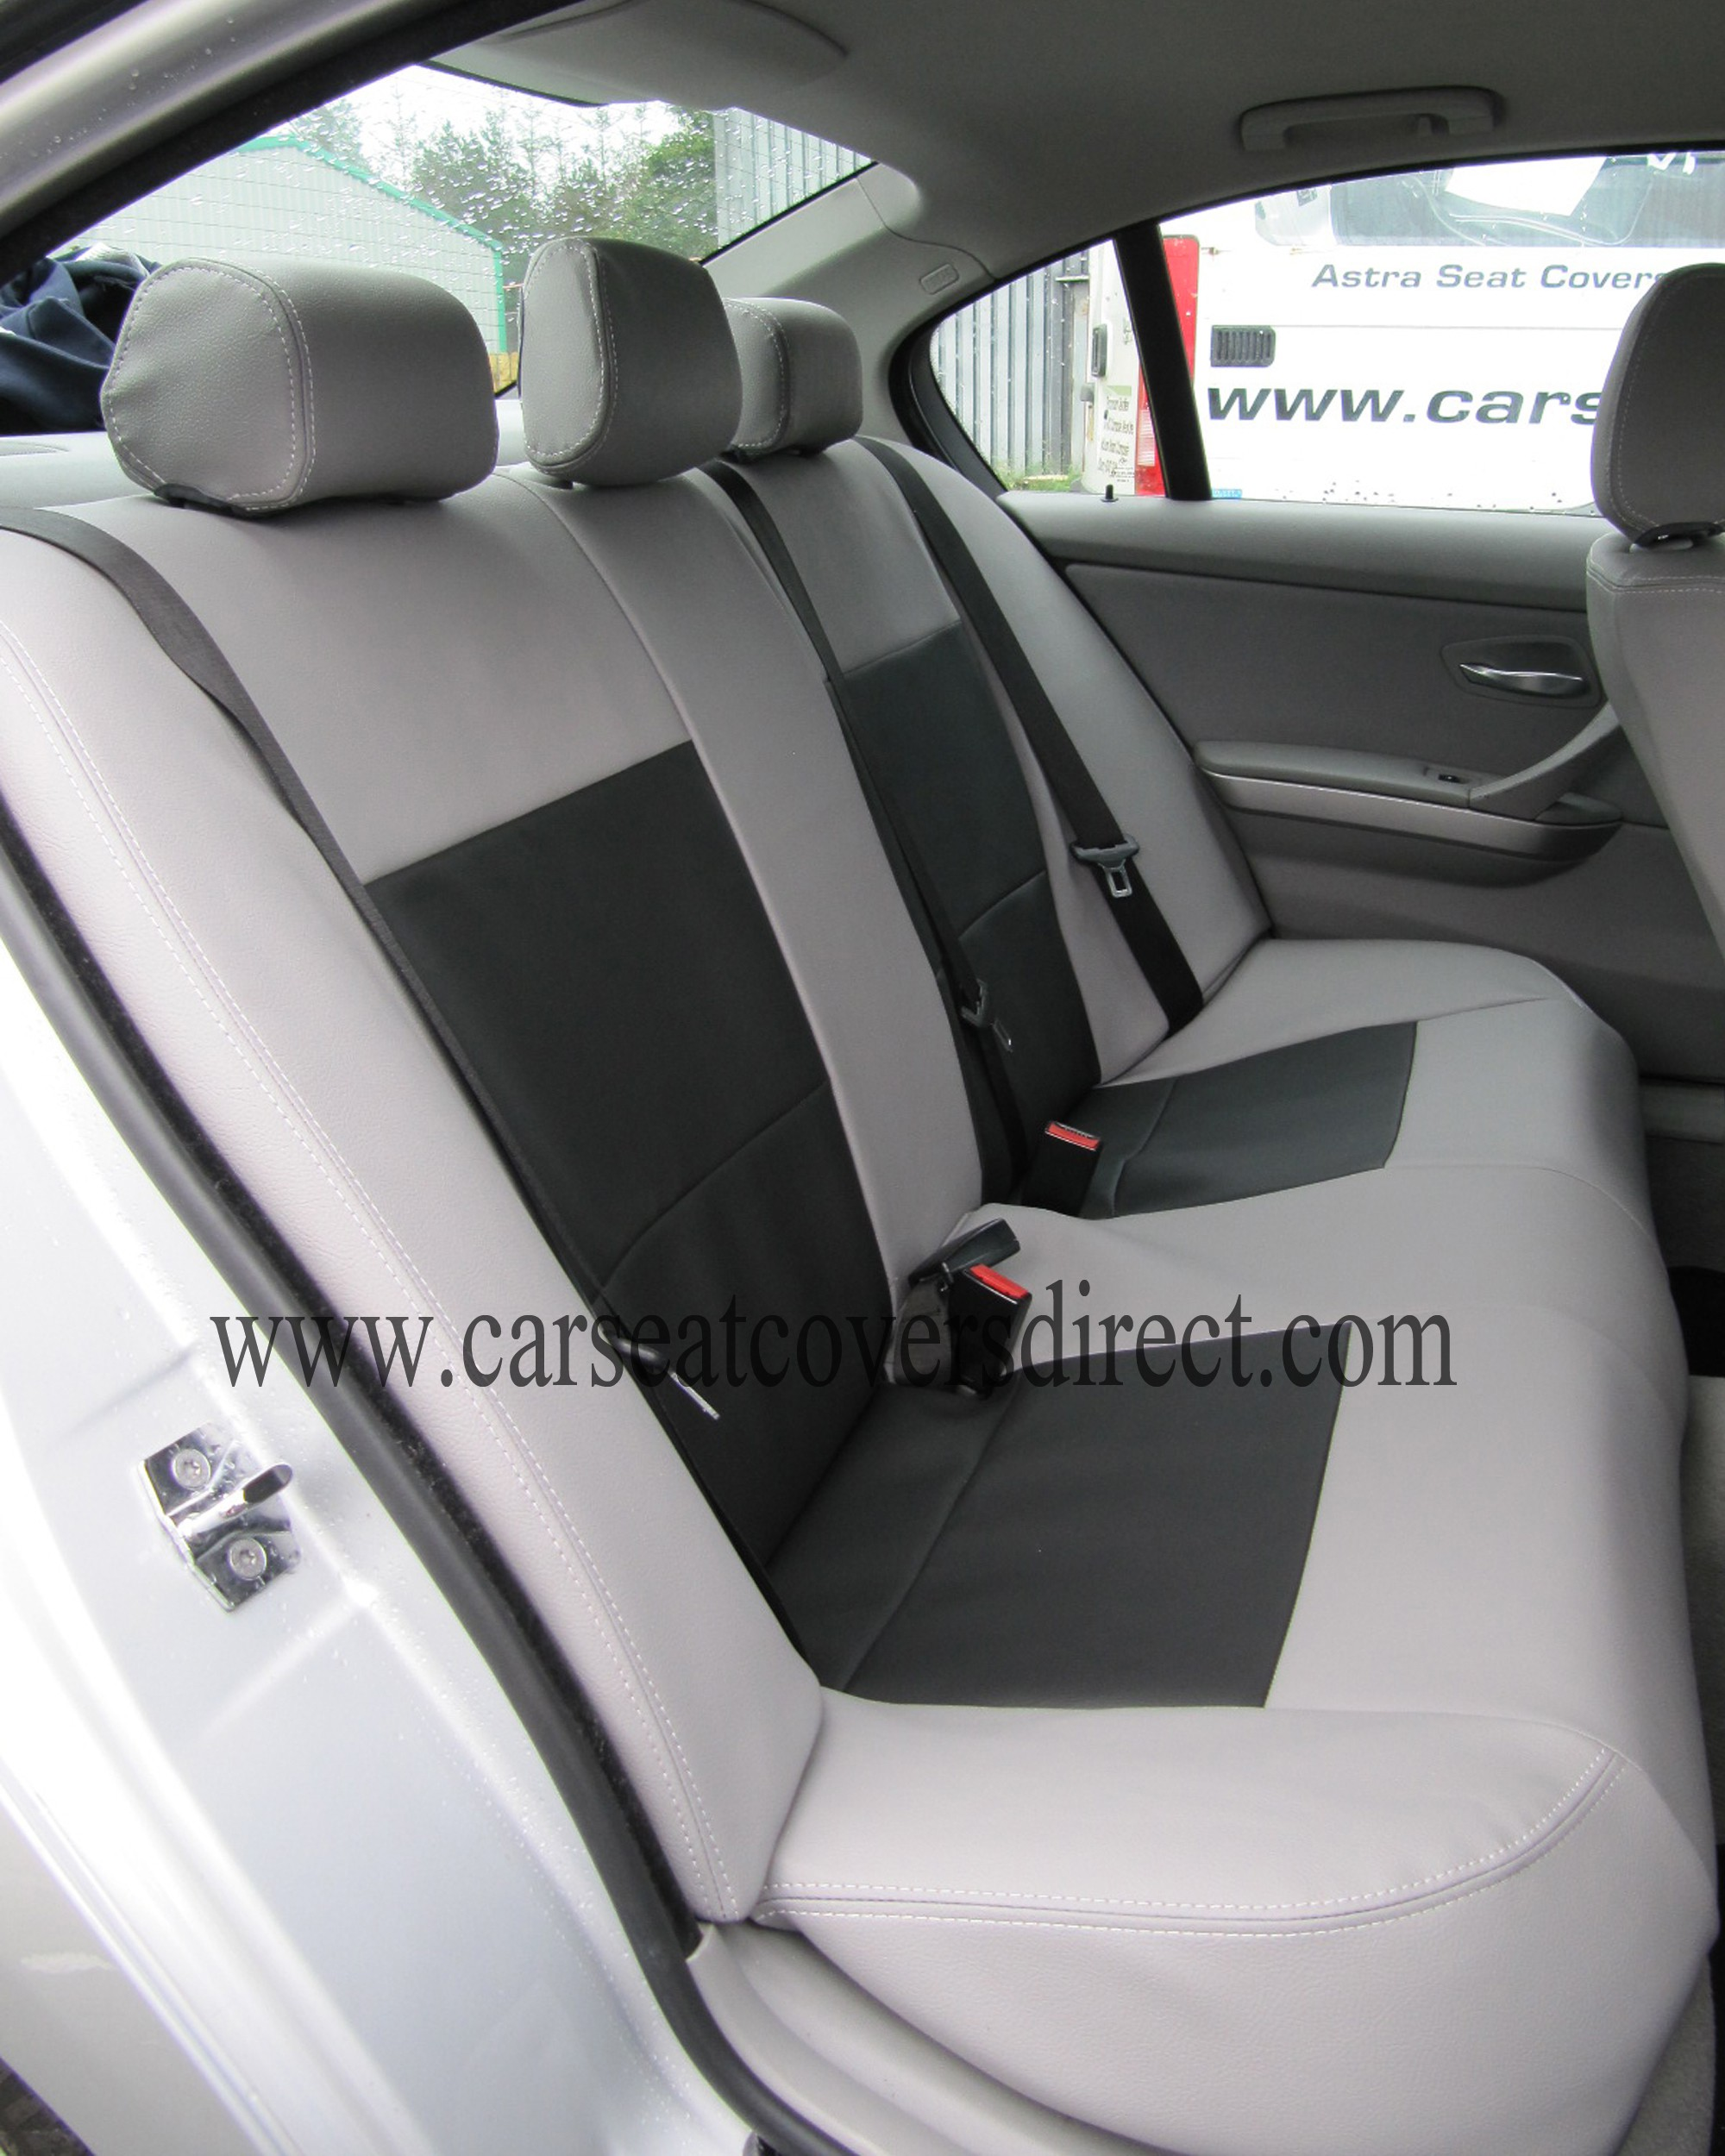 BMW Seat Belt Cover >> BMW 3 SERIES E90 Grey & Black Seat Covers